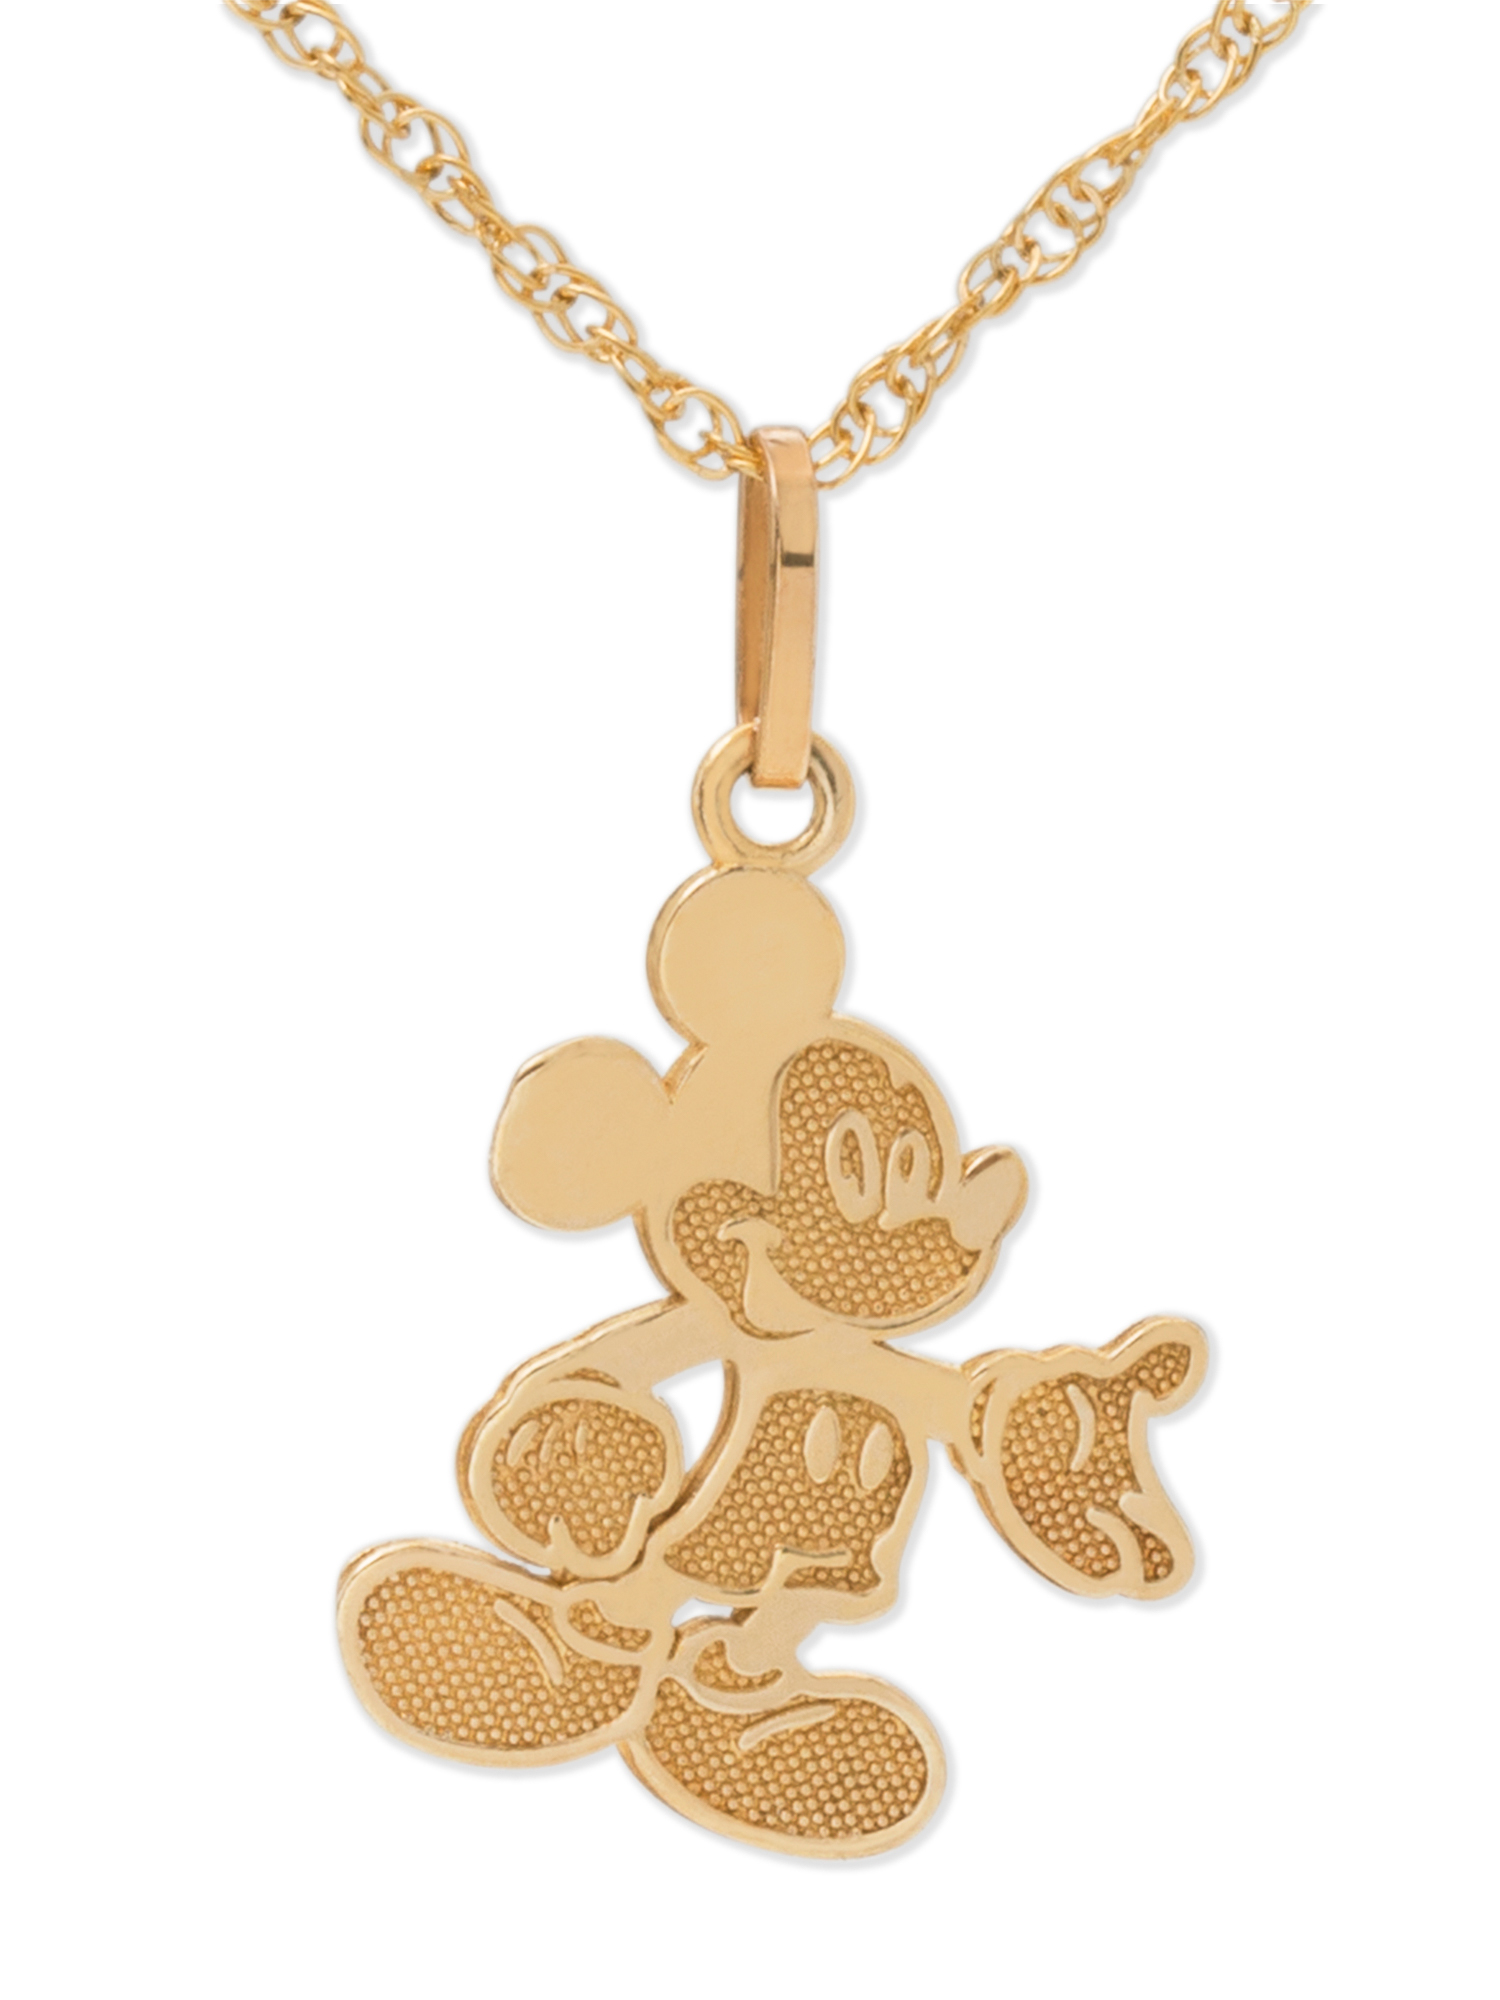 Disney 10kt Yellow Gold Full Body Mickey Mouse Pendant Necklace with Gold-Filled Chain